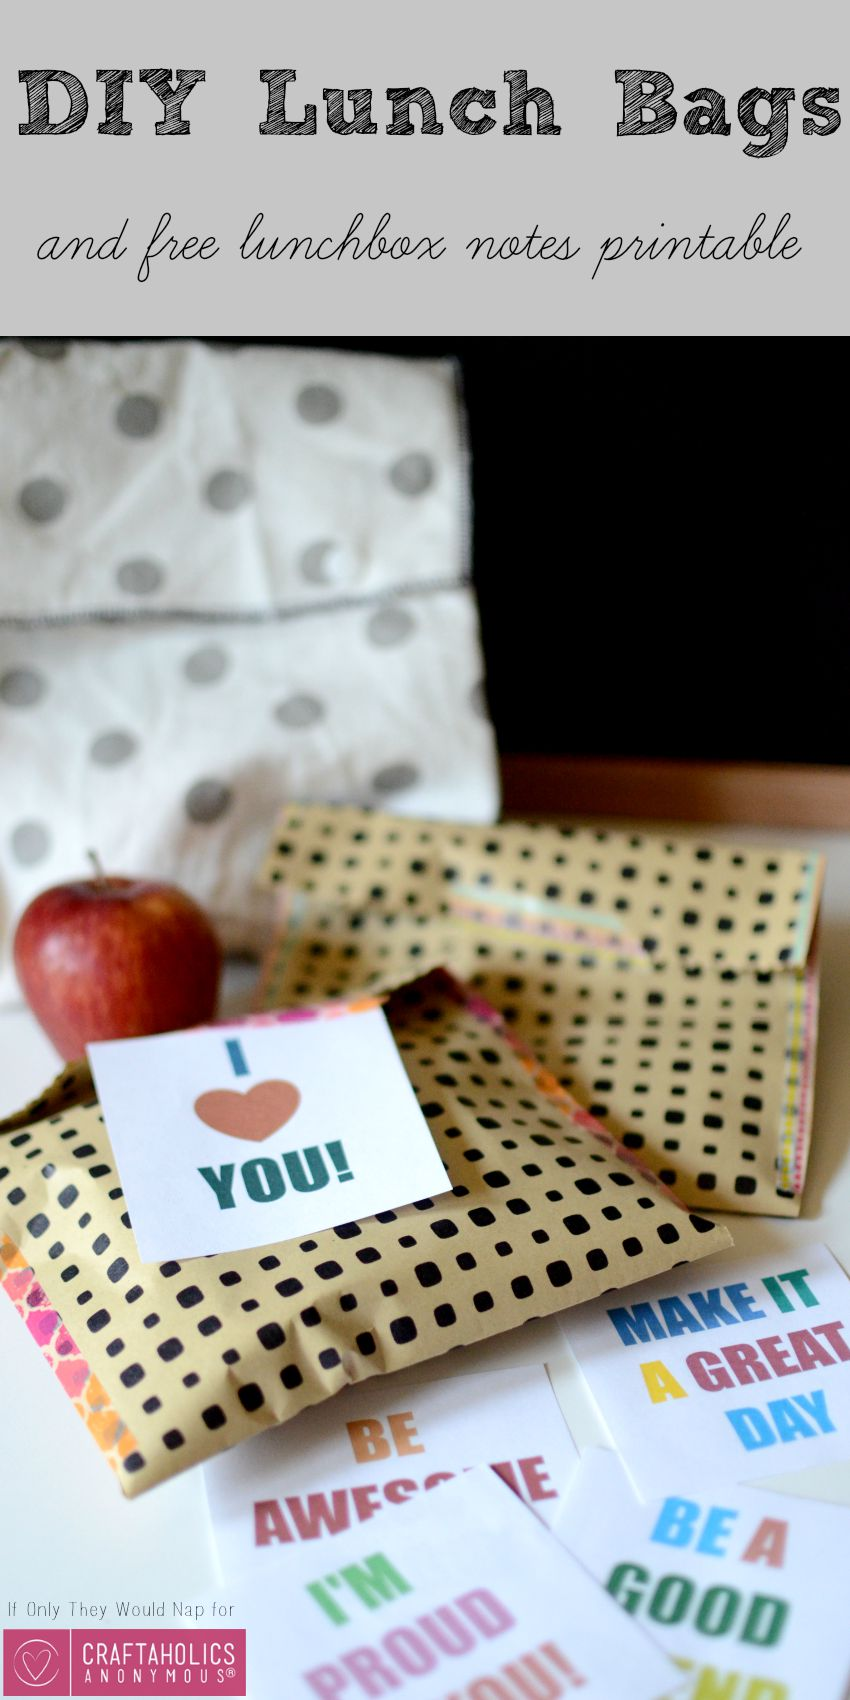 DIY Lunch Bags and free lunchbox notes printable